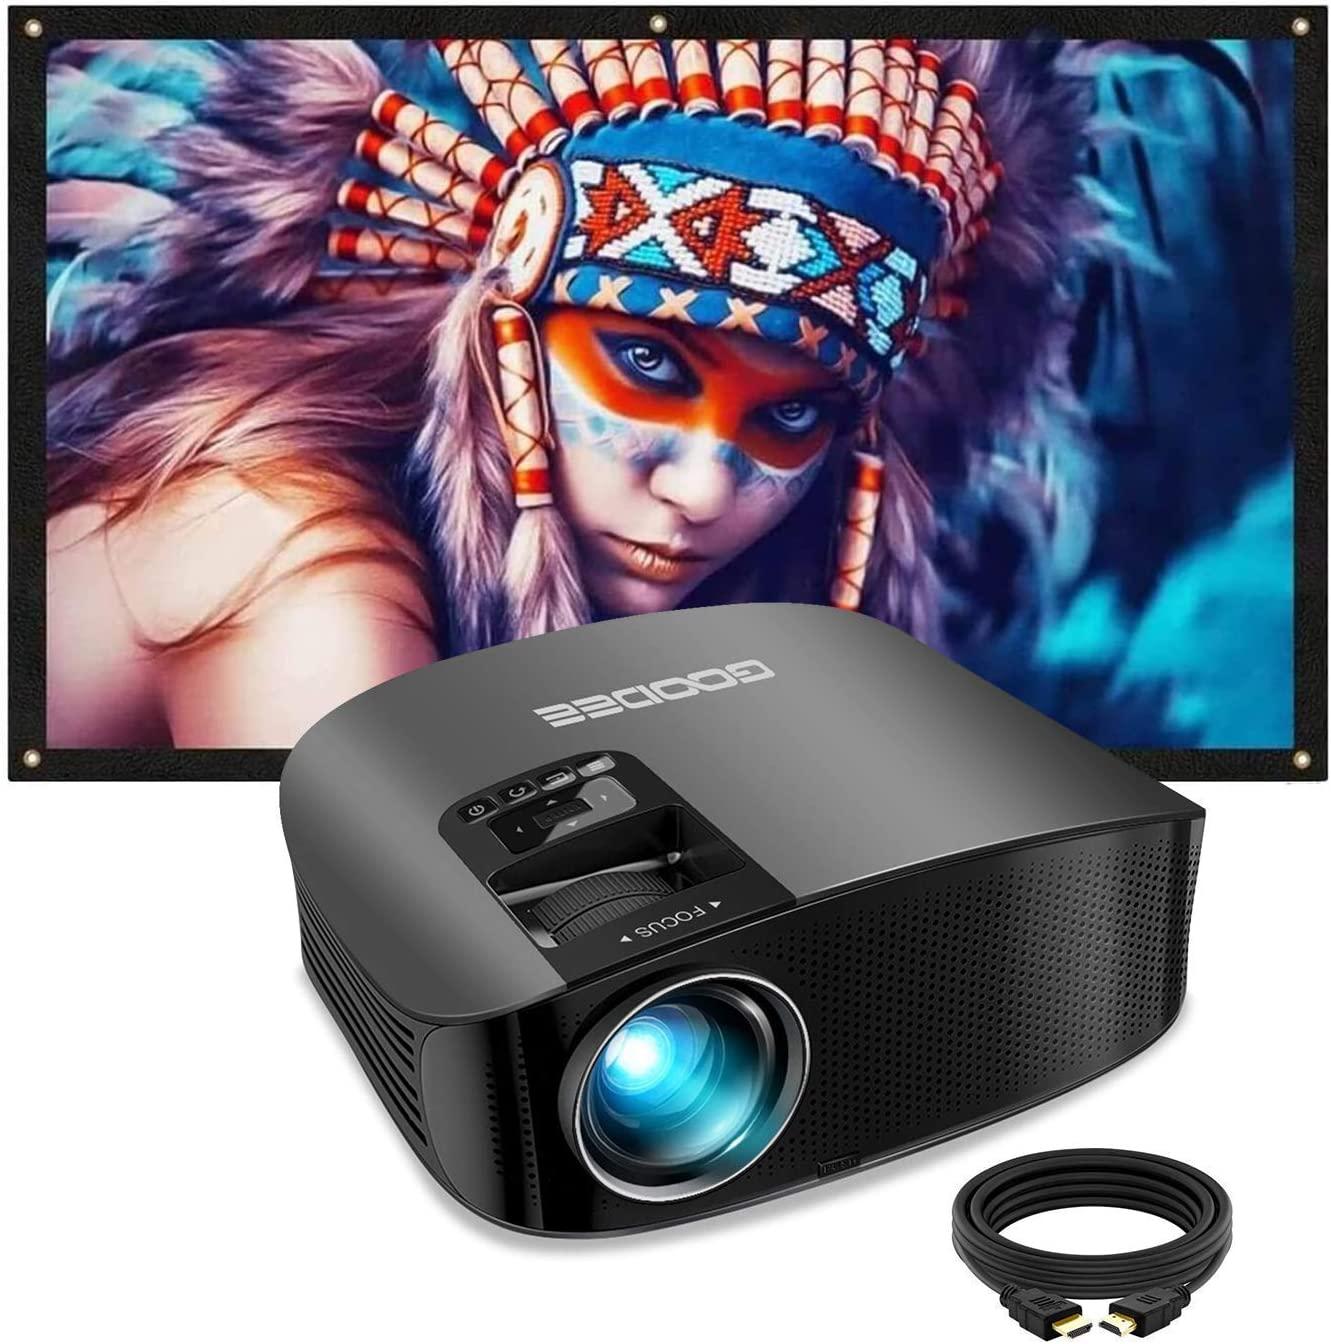 Projector, GooDee 2020 Upgrade HD Video Projector Outdoor Movie Projector with 100 Inch Projector Screen, 4K HD 16: 9 Portable Video Widescreen Movies Screen for Home Theater